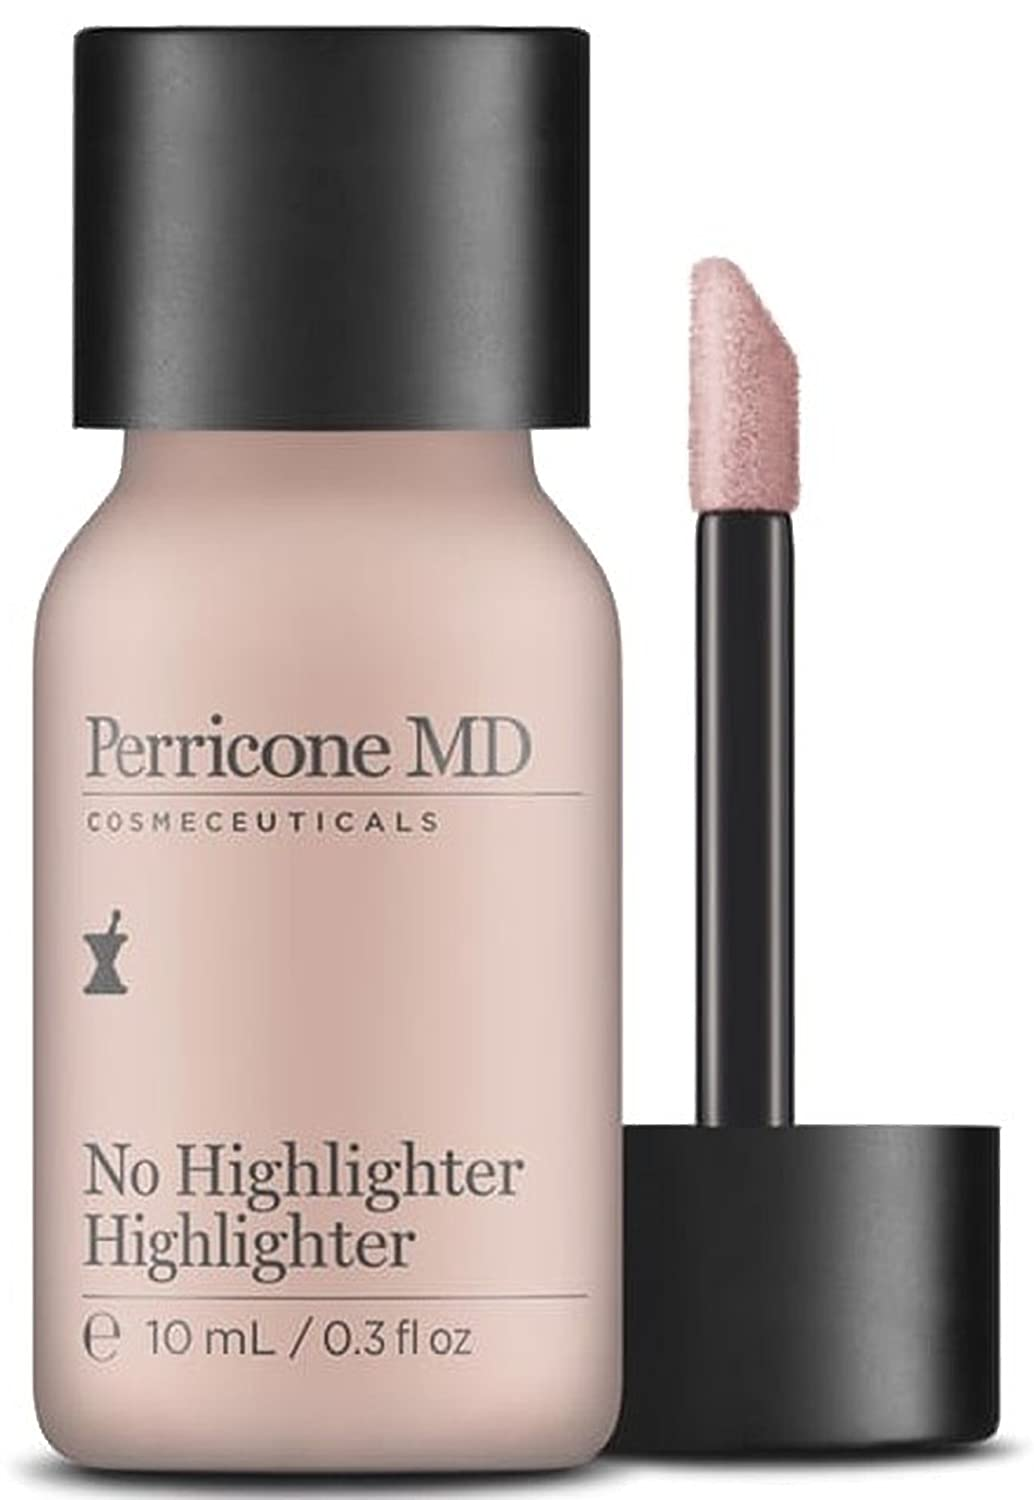 Perricone MD No highlighter, 1 Count Fab Products 5149